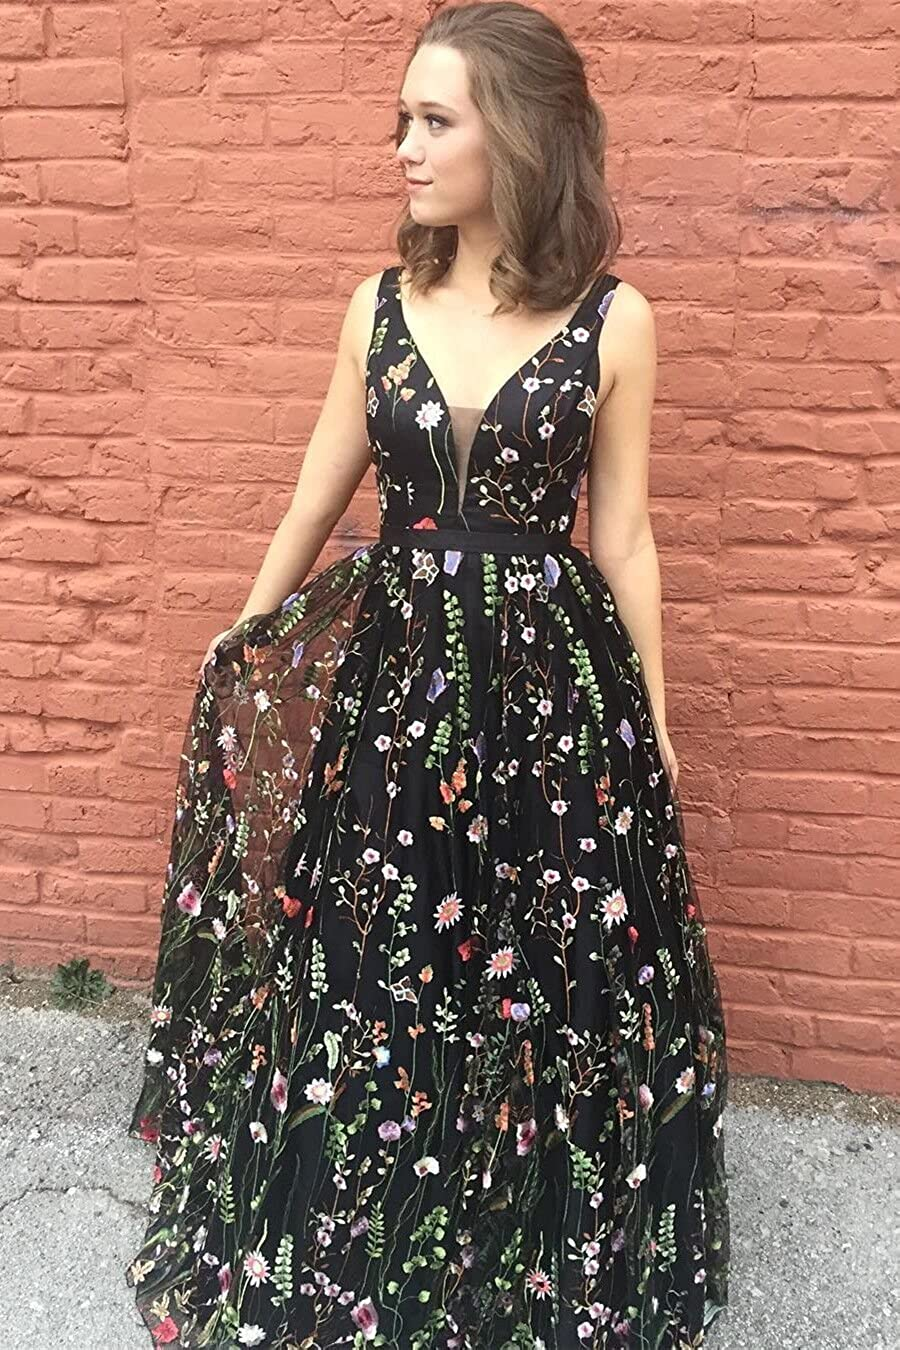 0a04eb5891e Vanial Women s Floral Embroidered Prom Dress Formal Evening Gown V241 at  Amazon Women s Clothing store